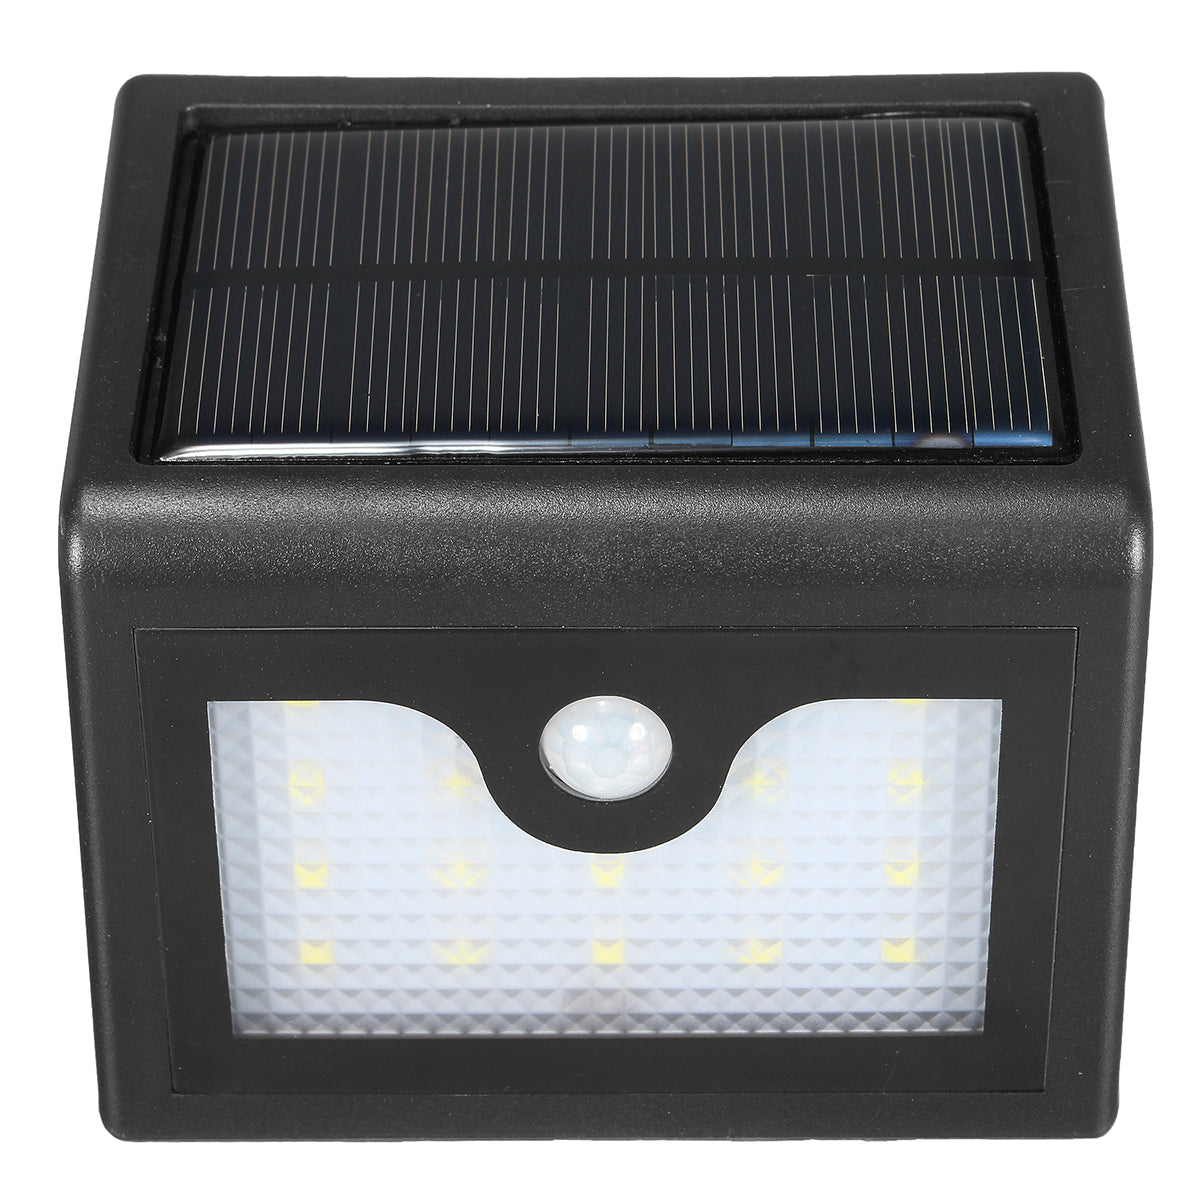 16 LED Solar Power PIR Motion Sensor Wall Light Outdoor Waterproof Garden Lamp